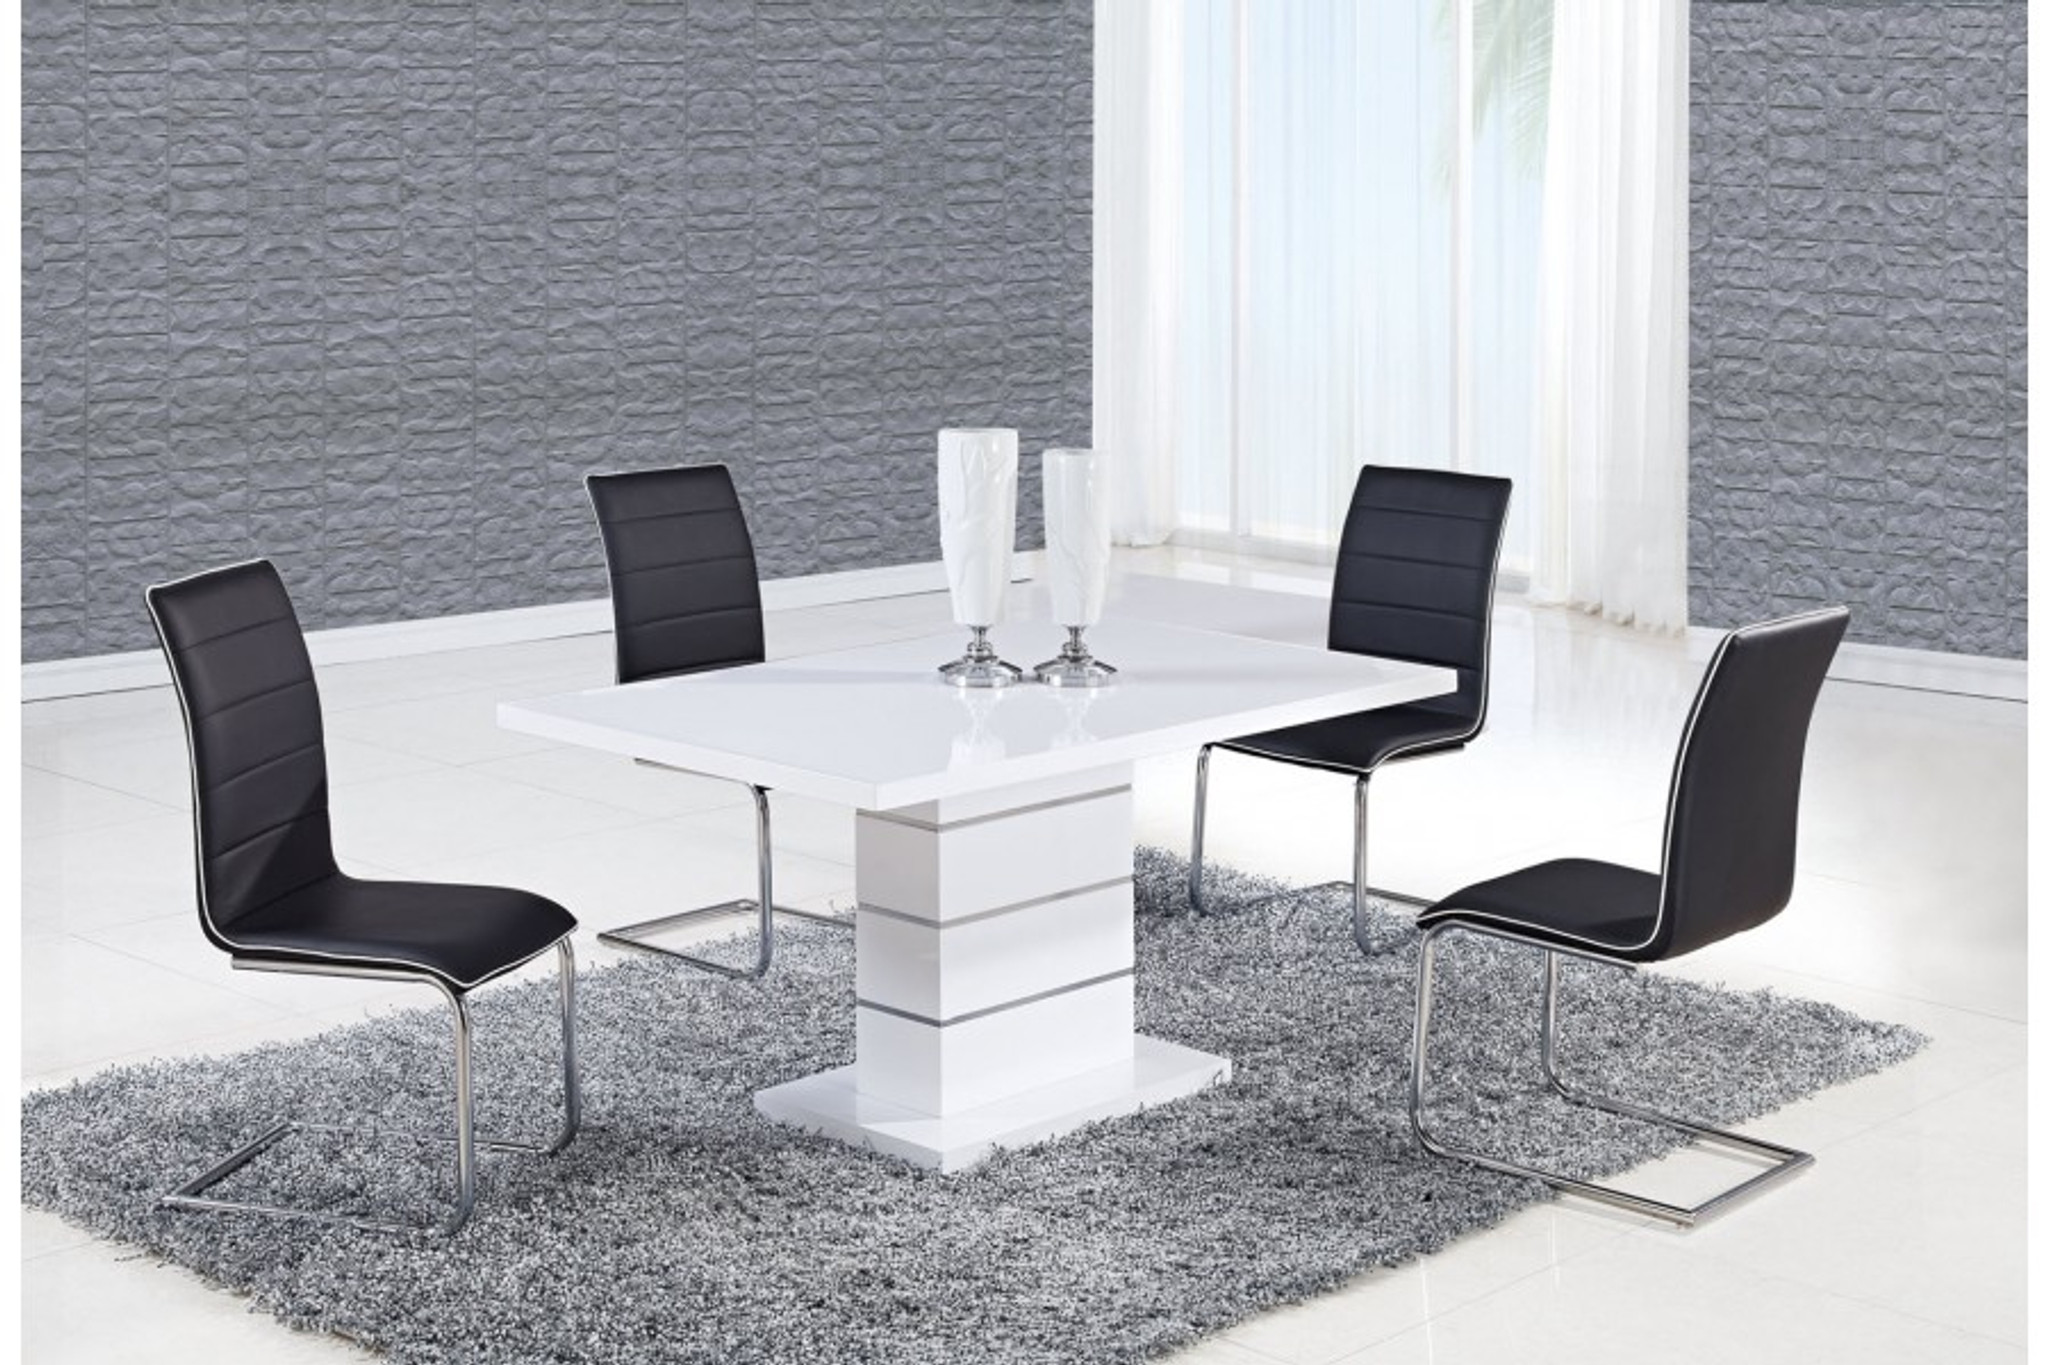 Outstanding Alexia 5 Pcs Contemporary Set 4 Black Chairs And White Modern Table Download Free Architecture Designs Remcamadebymaigaardcom